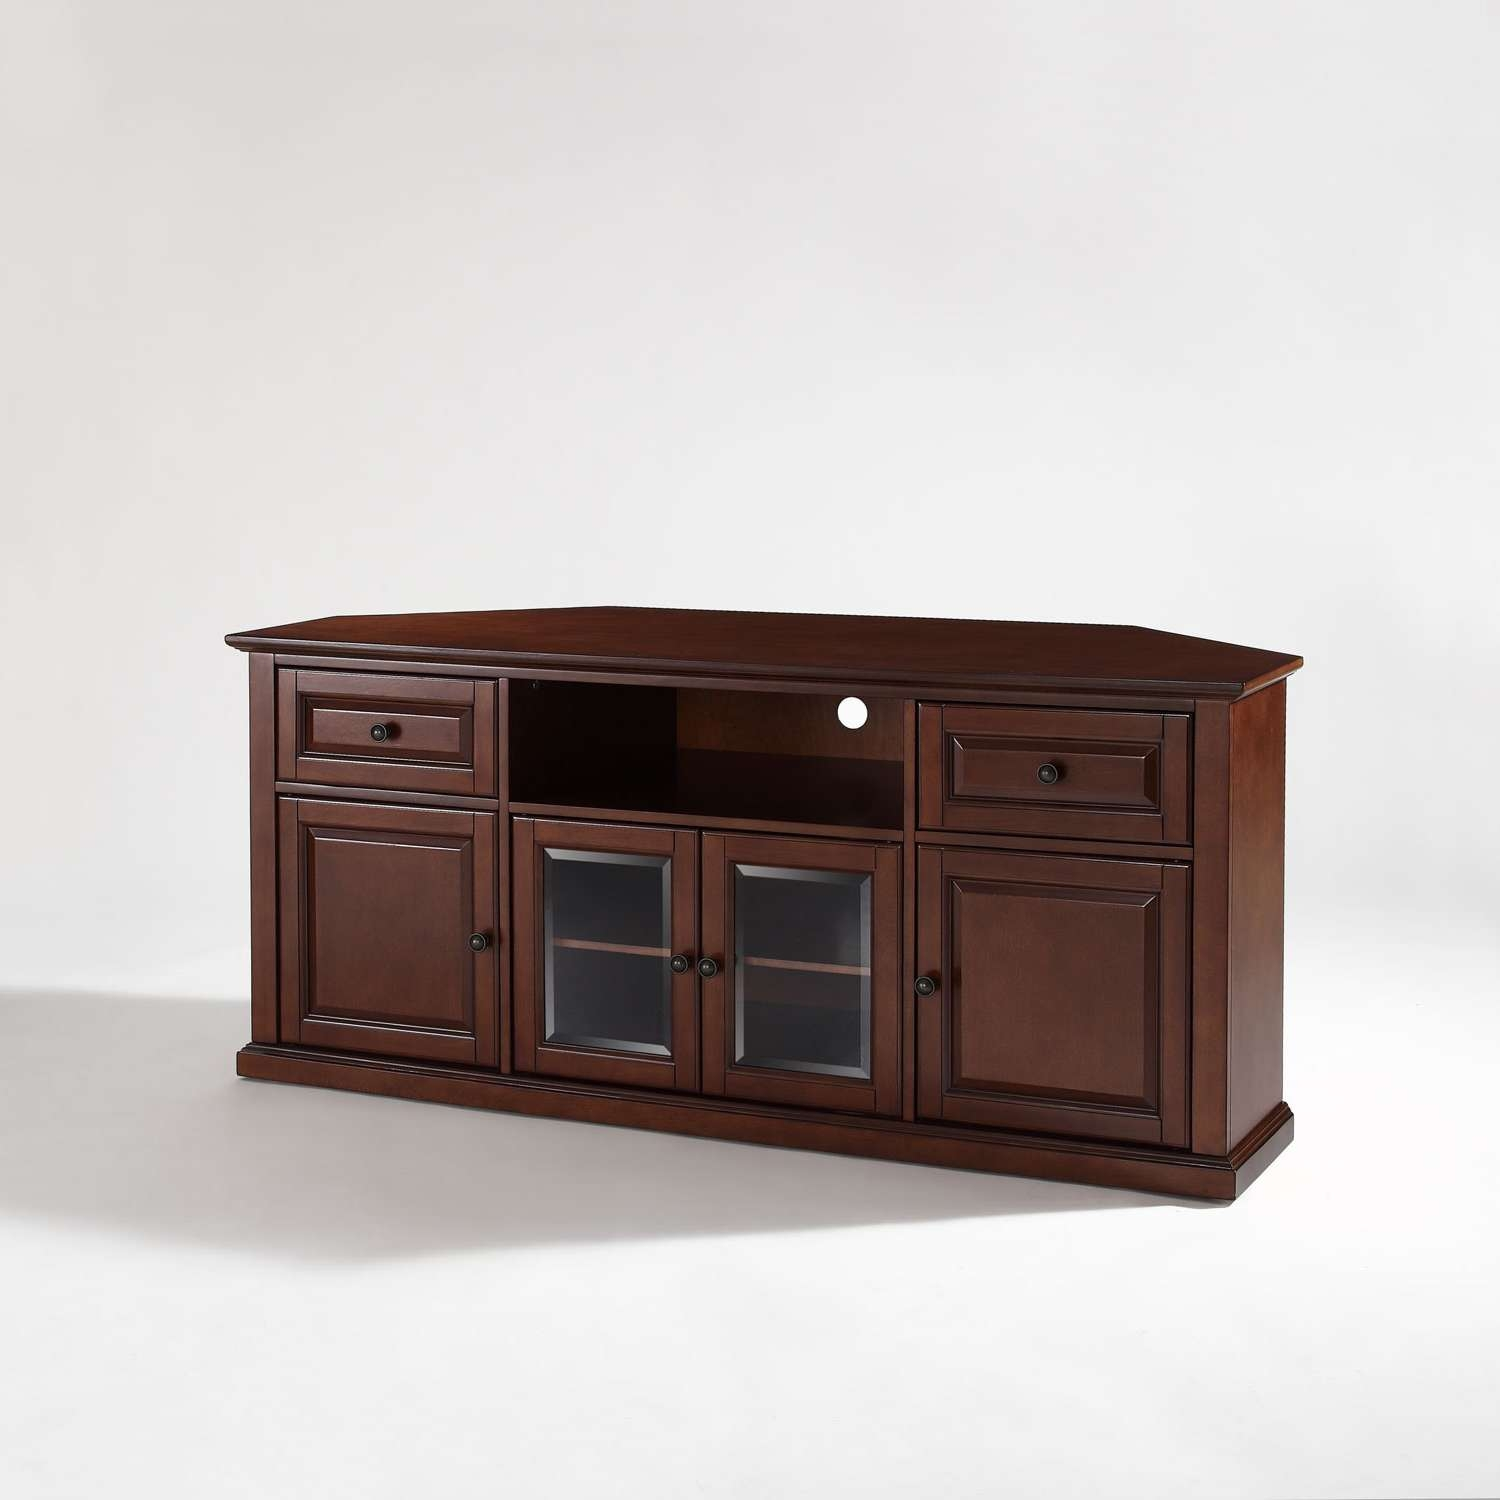 60 Inch Corner Tv Stand In Vintage Mahogany Crosley Furniture With Tv Stands For Corner (View 1 of 15)